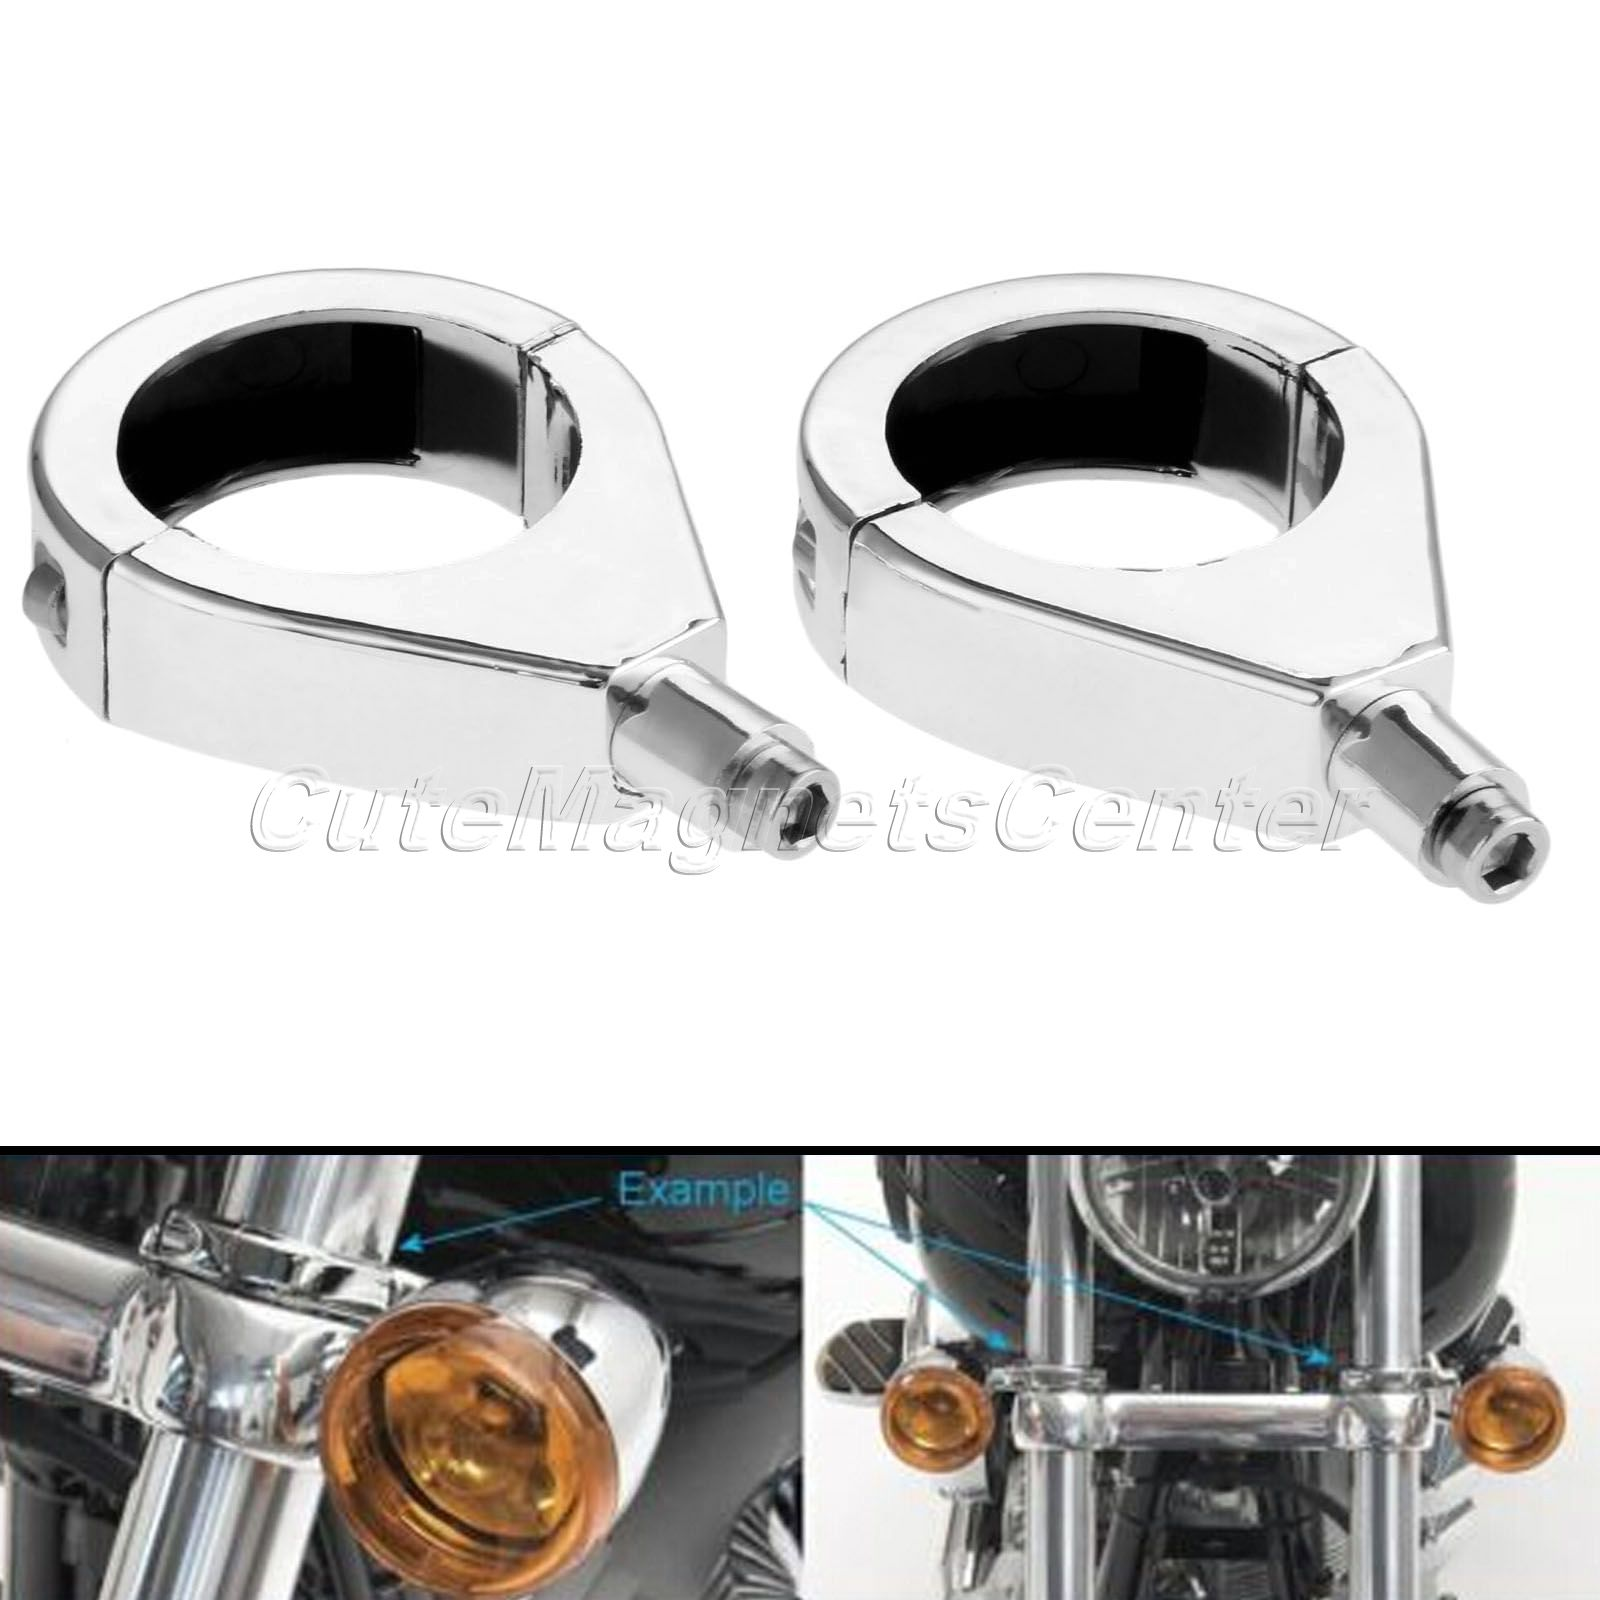 Mtsooning 2pcs 41mm Motorcycle Turn Signal Lights Indicator Fork Clamps Relocation Mount Bracket for Harley Davidson Softail 4 pcs 12 led motorcycle turn signal lights bendable flashing motorbike indicator blinker moto tail lights signal lamp for harley